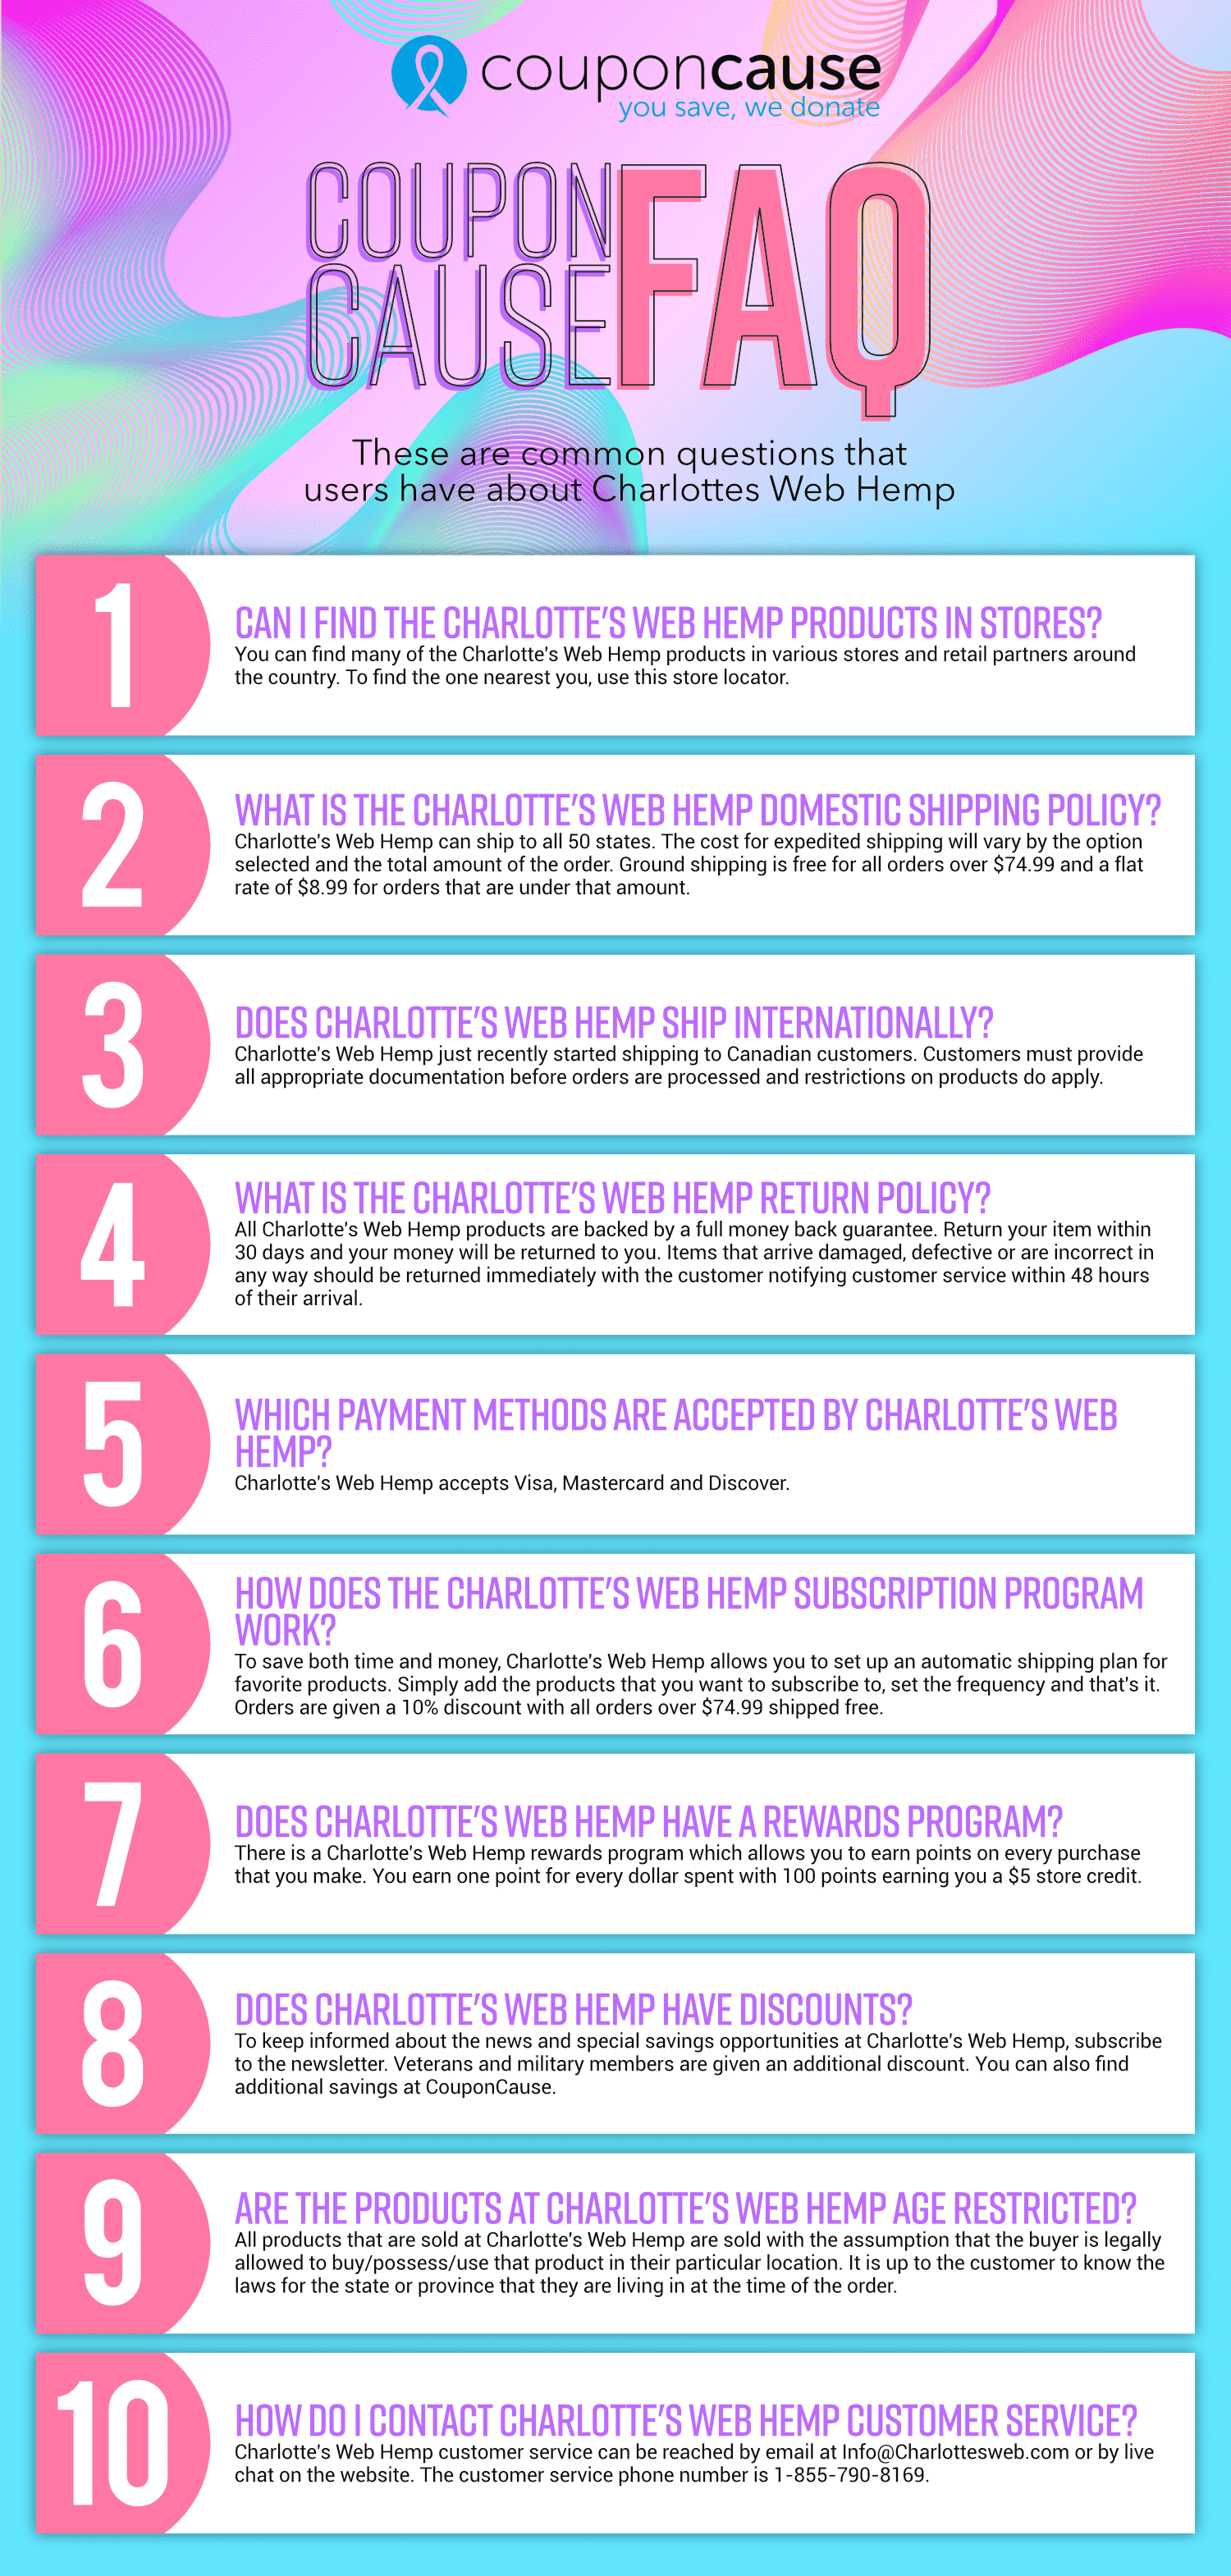 Charlotte's Web Hemp Coupon Cause FAQ (C.C. FAQ) Infographic